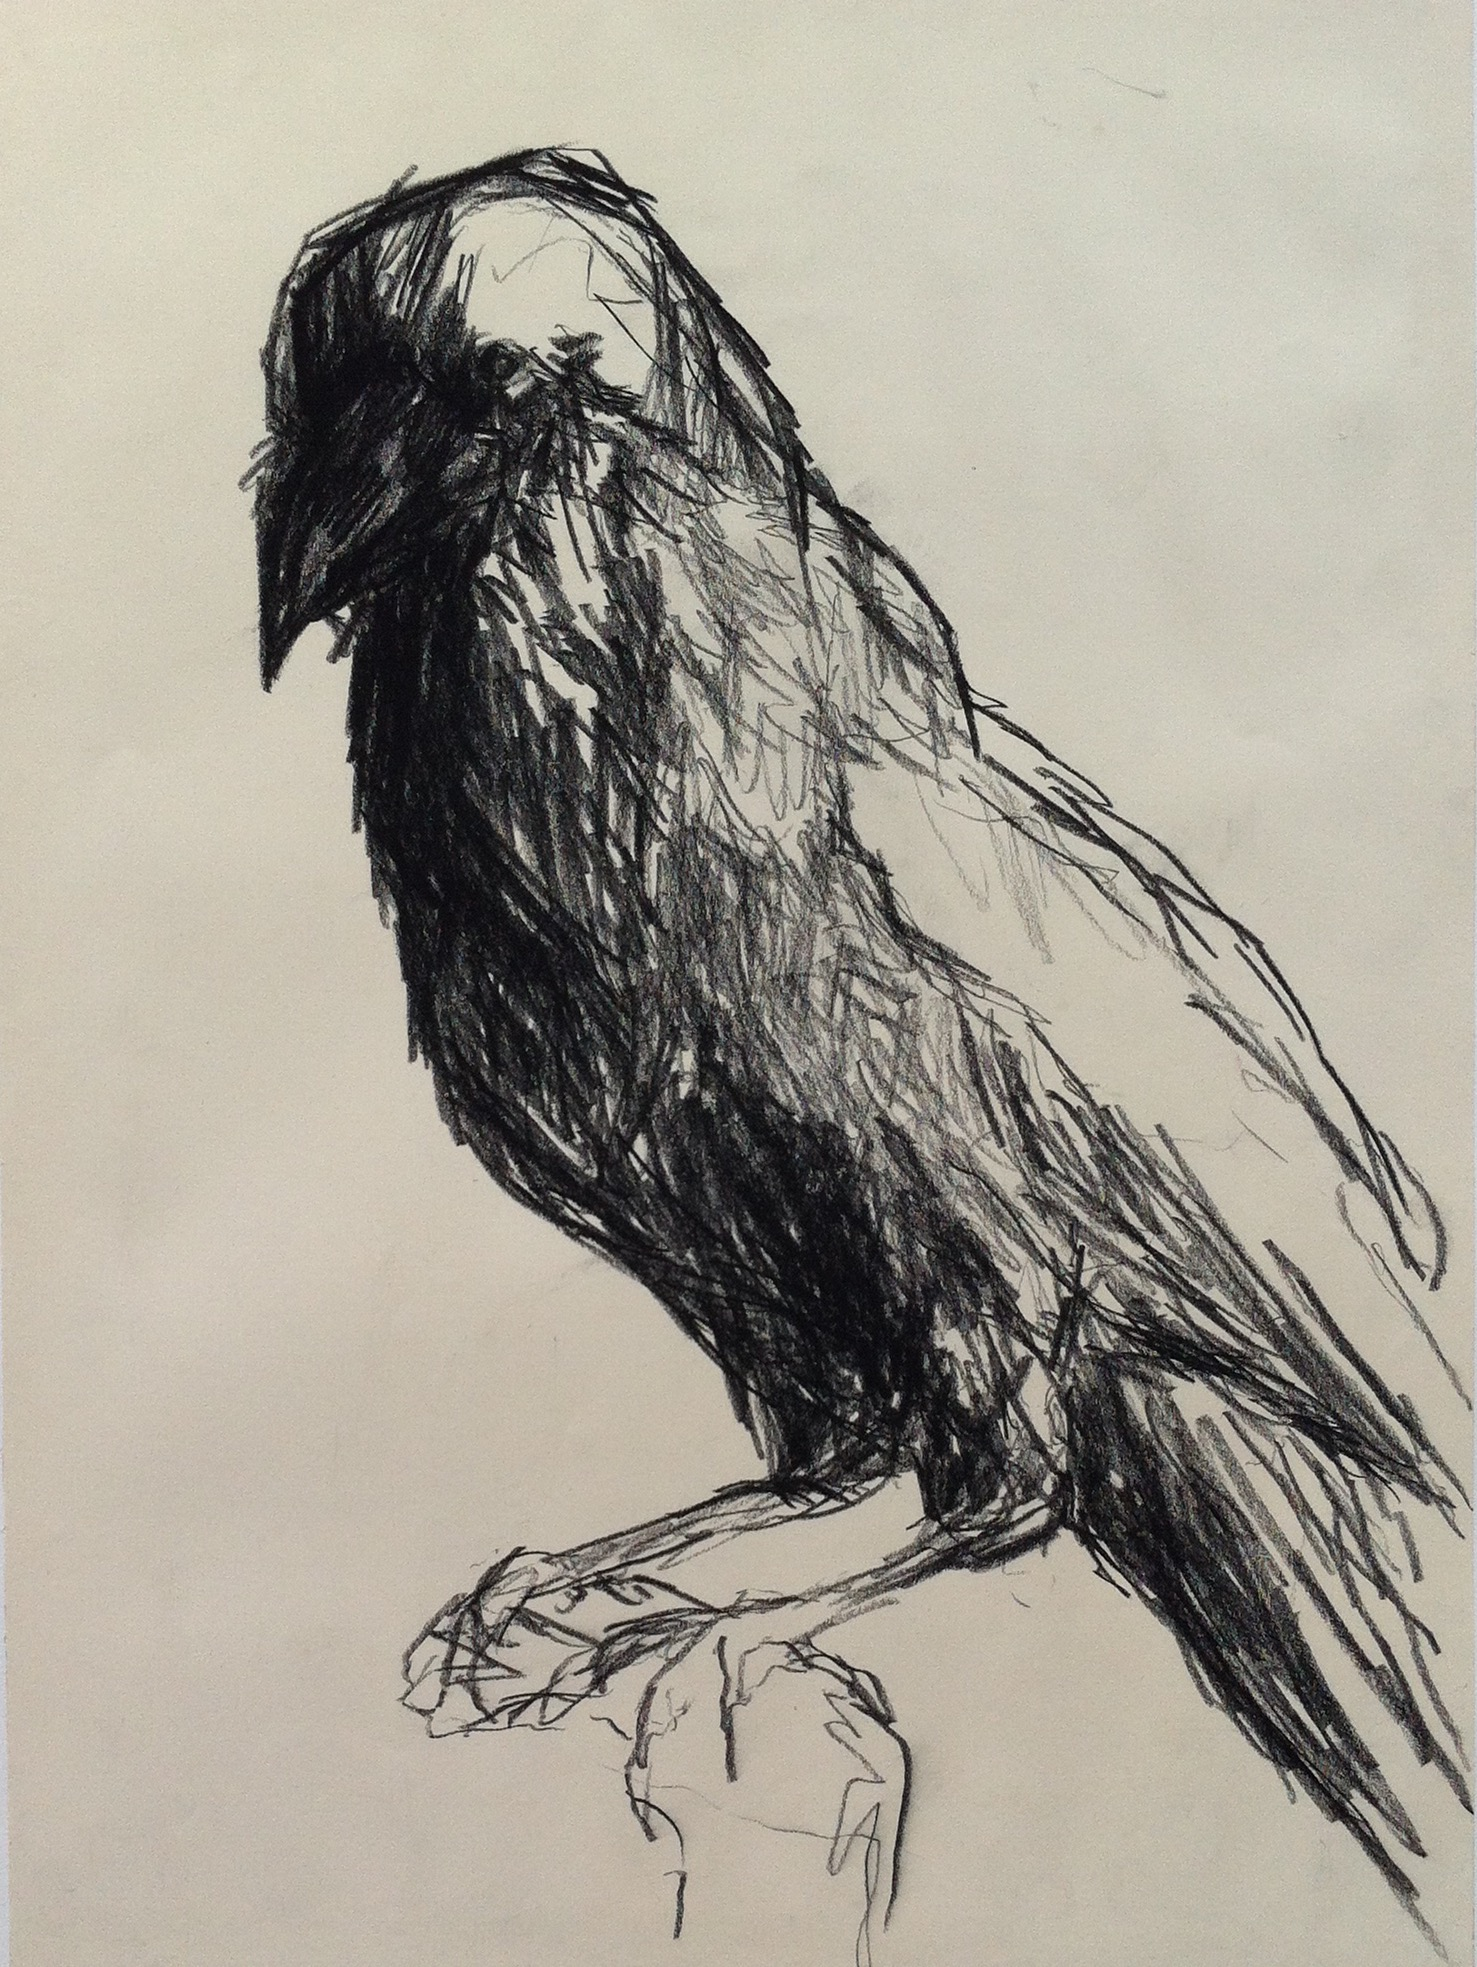 Black chalk drawings by Cecilie Nyman // GALLERY NYMAN